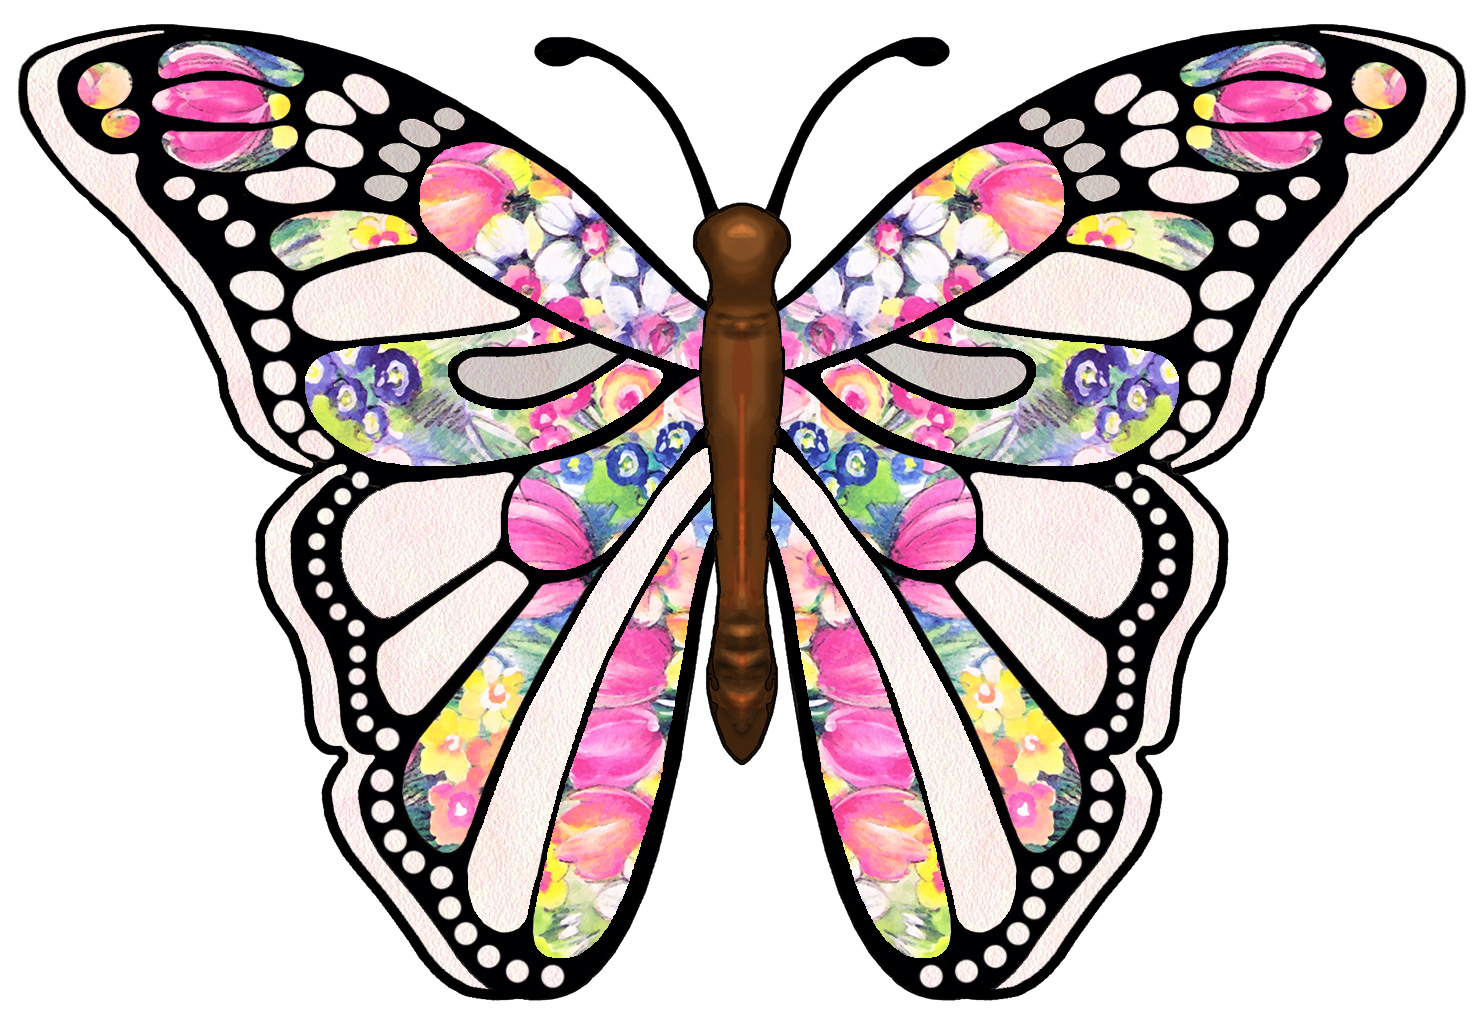 Free Printable Butterfly Clip Art Freeuse Download - Rr Collections - Free Printable Butterfly Pictures